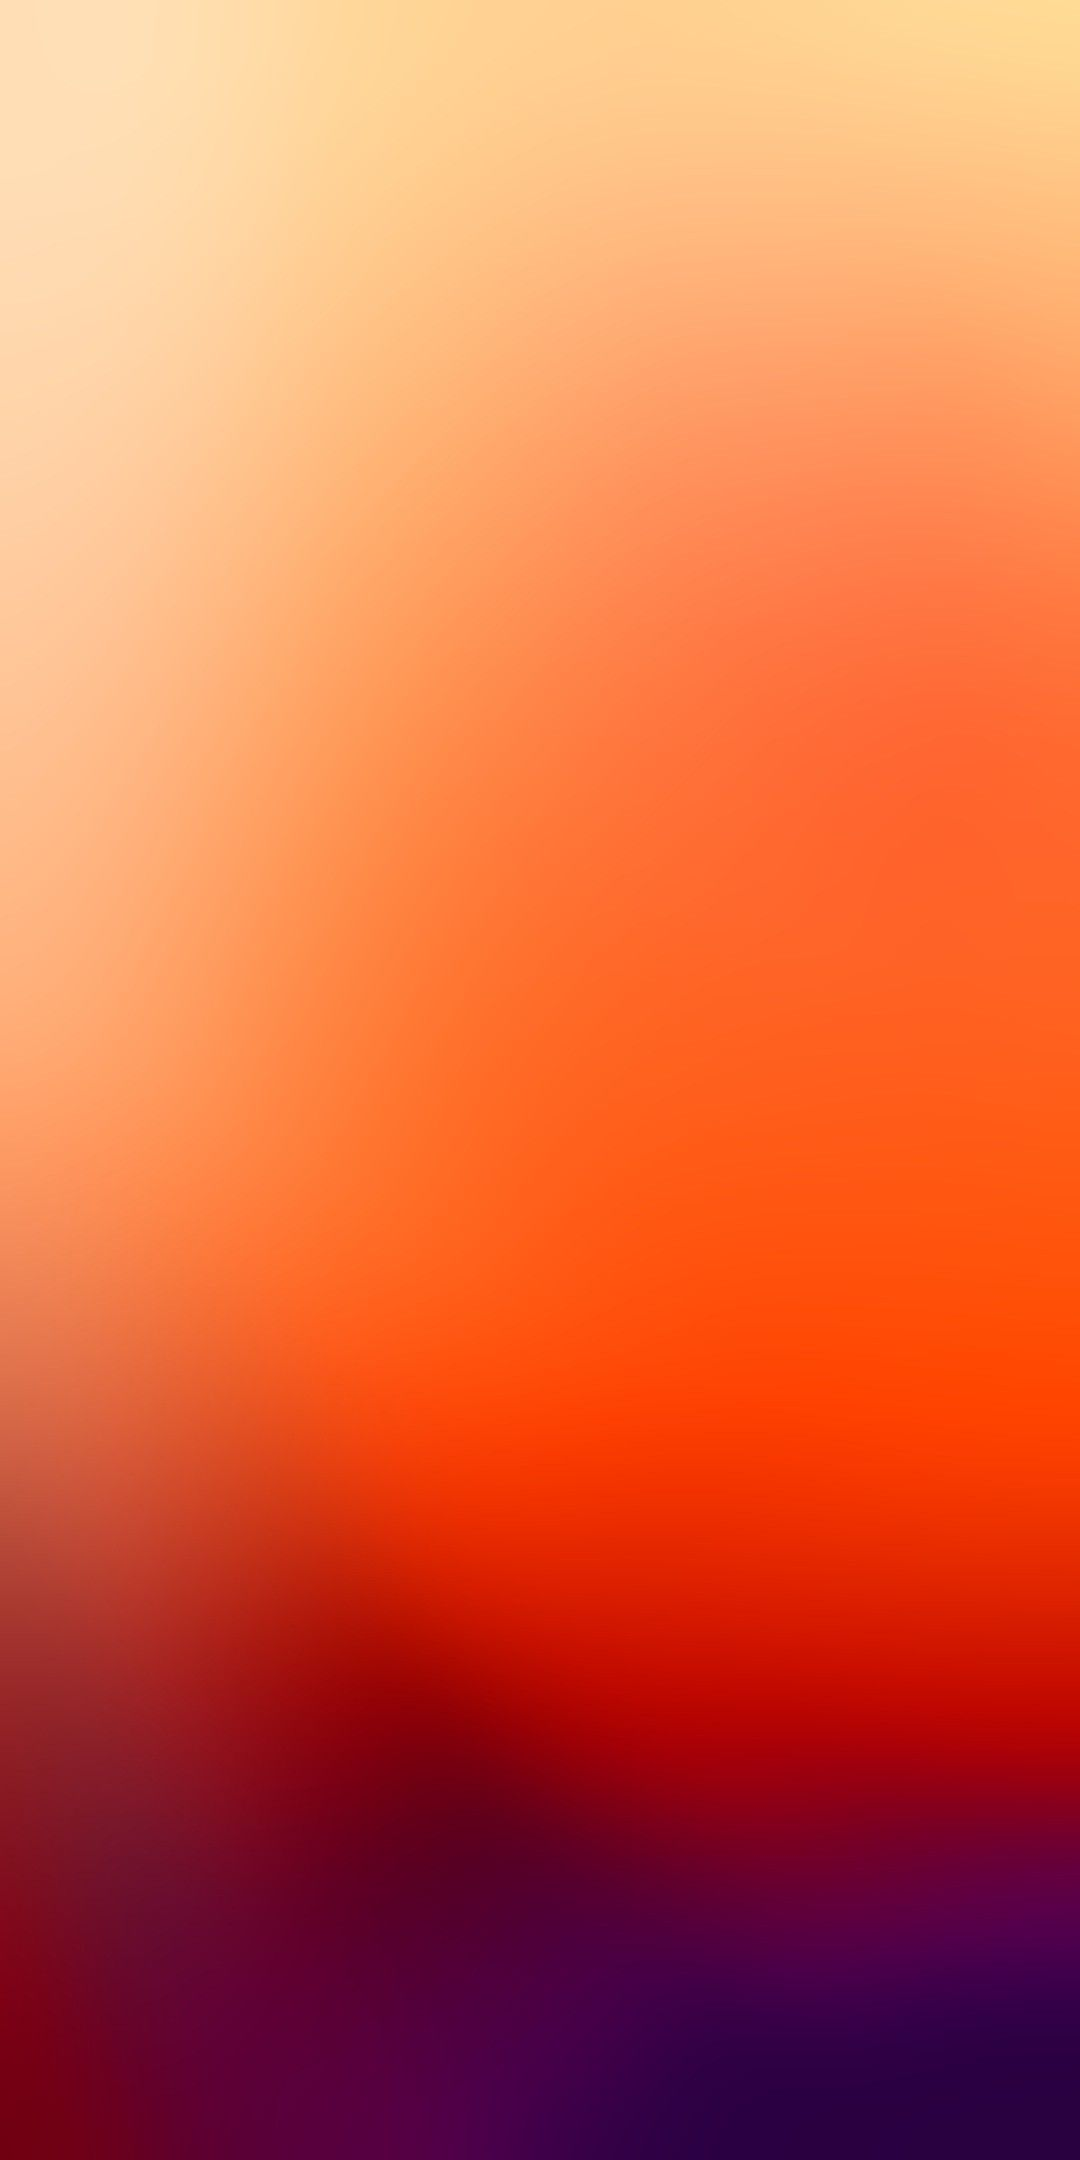 Orange And Blue Gradient Background Ombre Wallpapers Ombre Background Orange Wallpaper